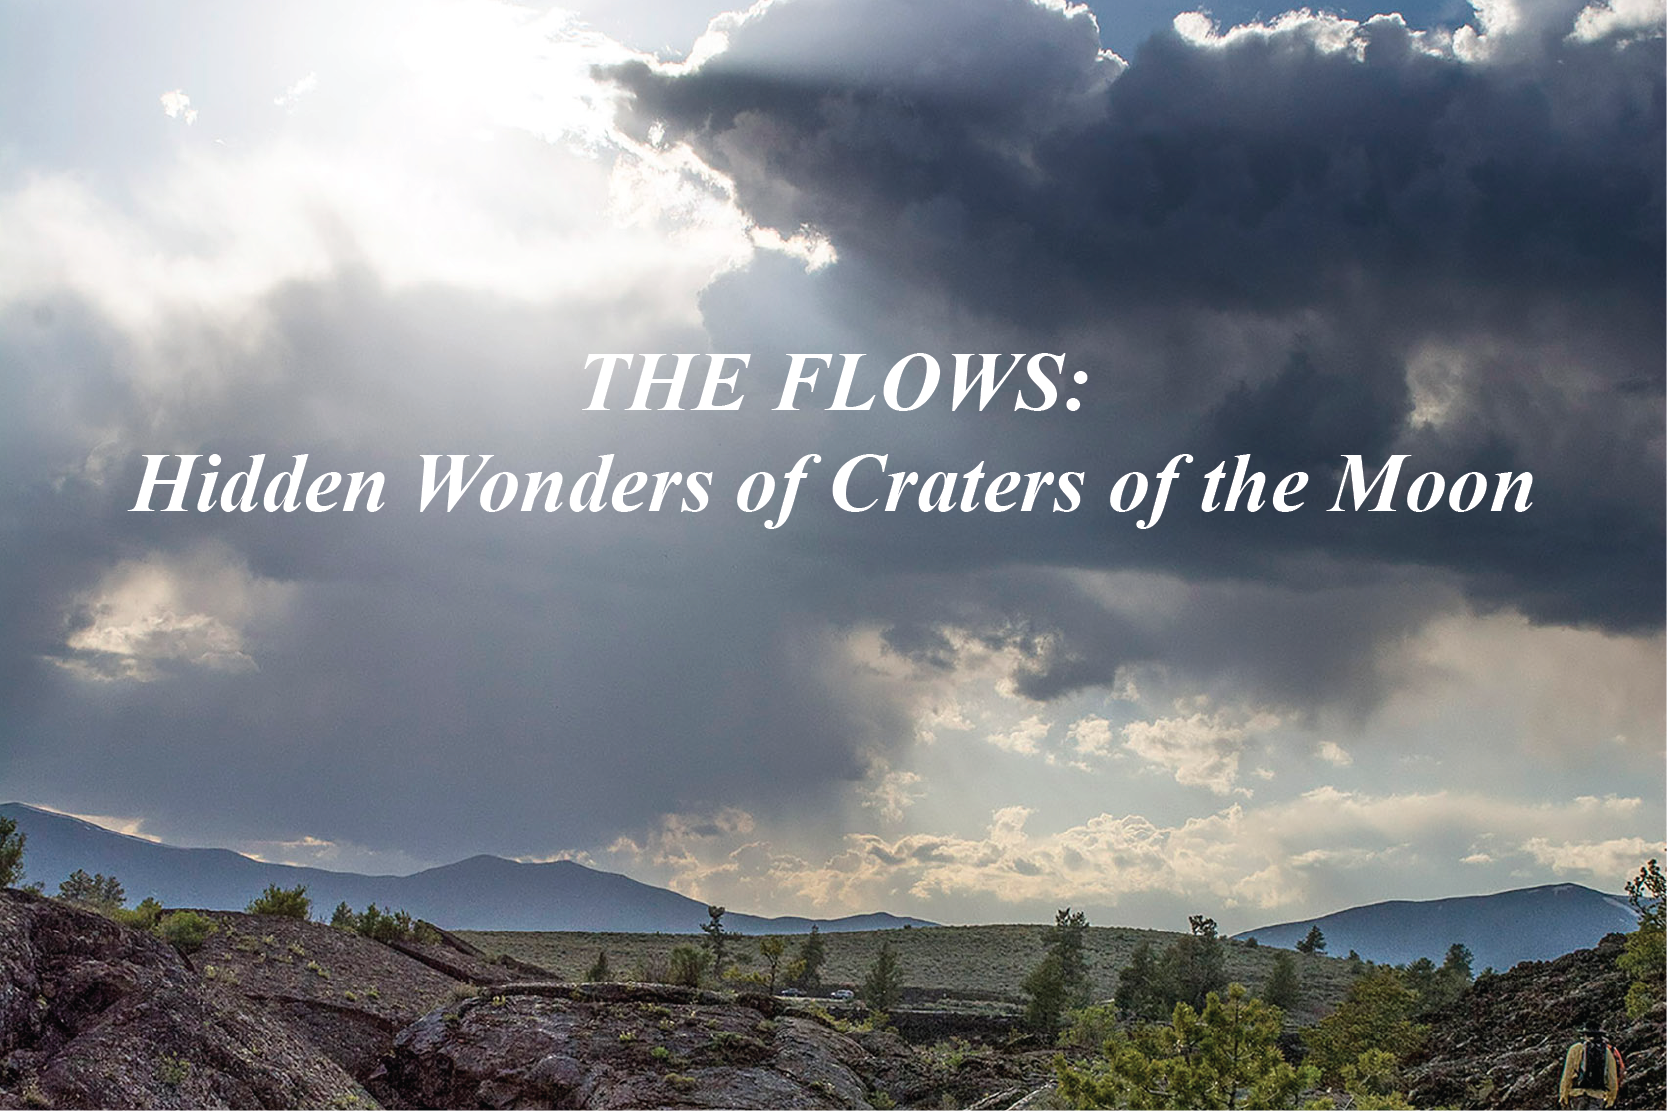 The Flows: Hidden Wonders of Craters of the Moon. Background lava flows and sunset.